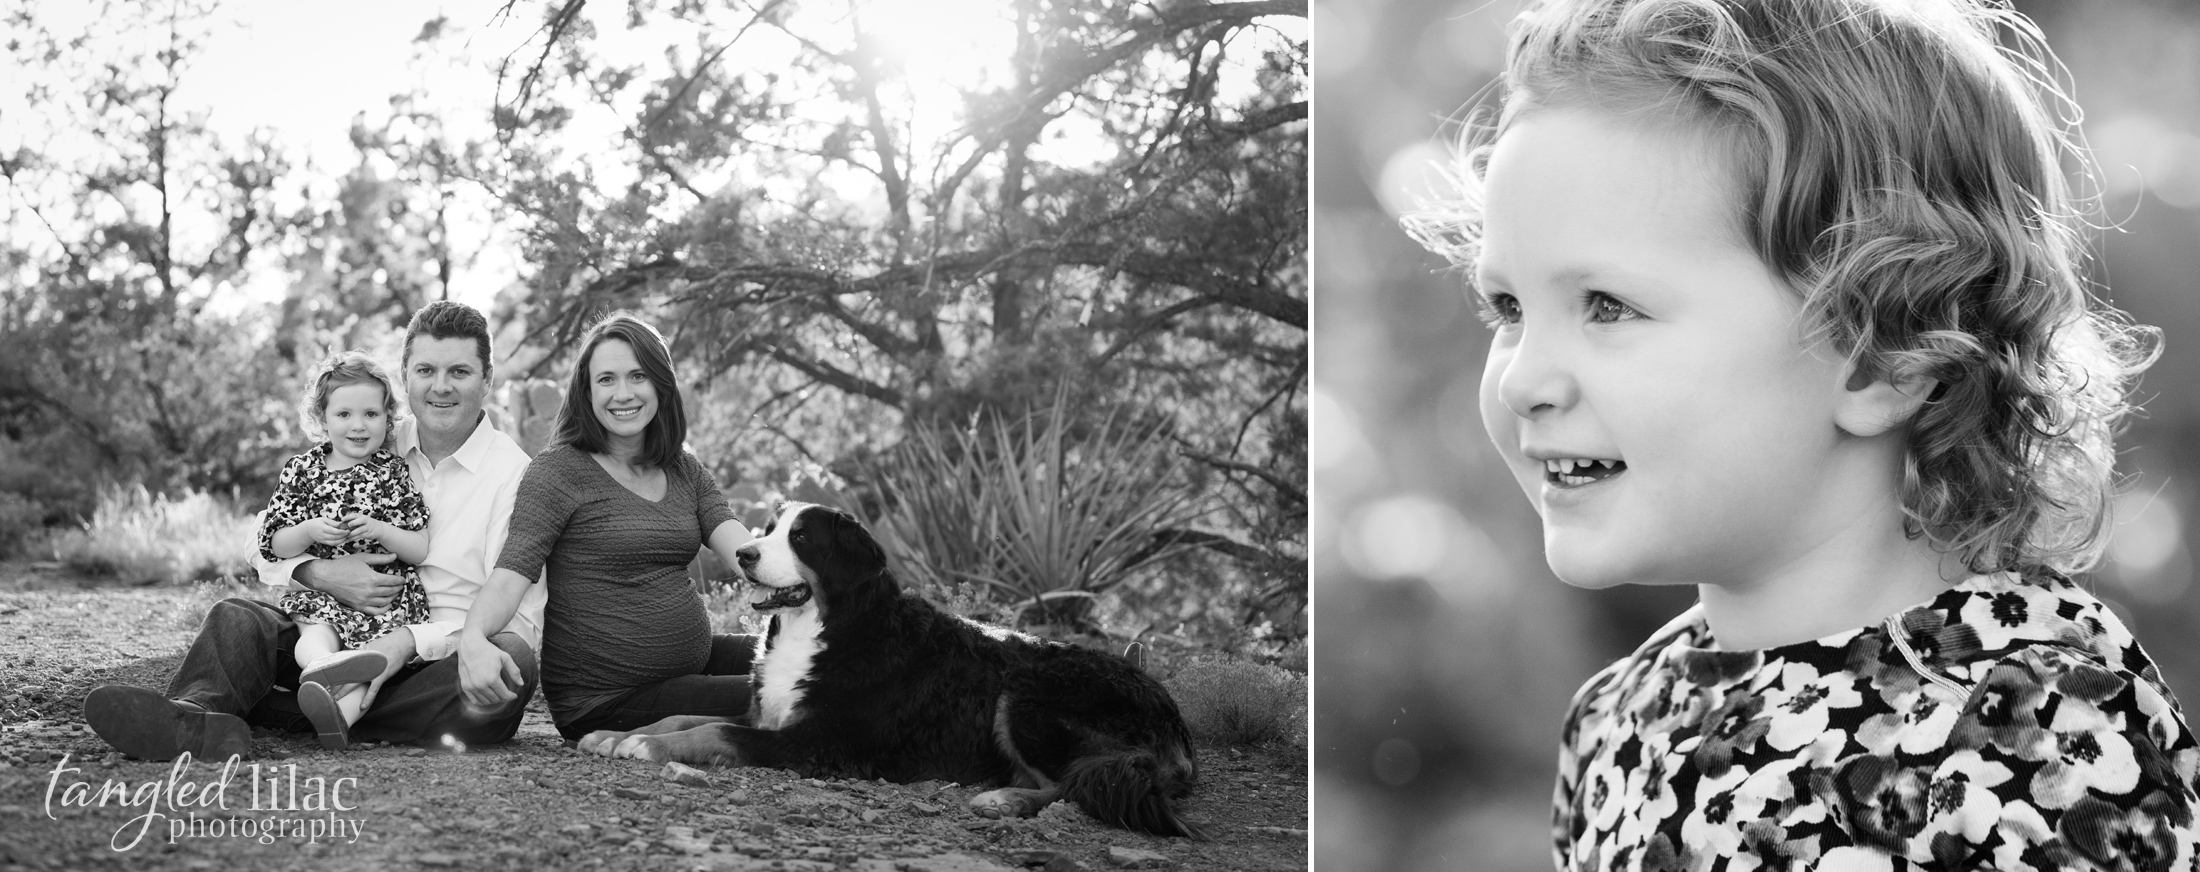 105-sedona-family-photographer-maternity-pet-dog-bernese-mountain-dog